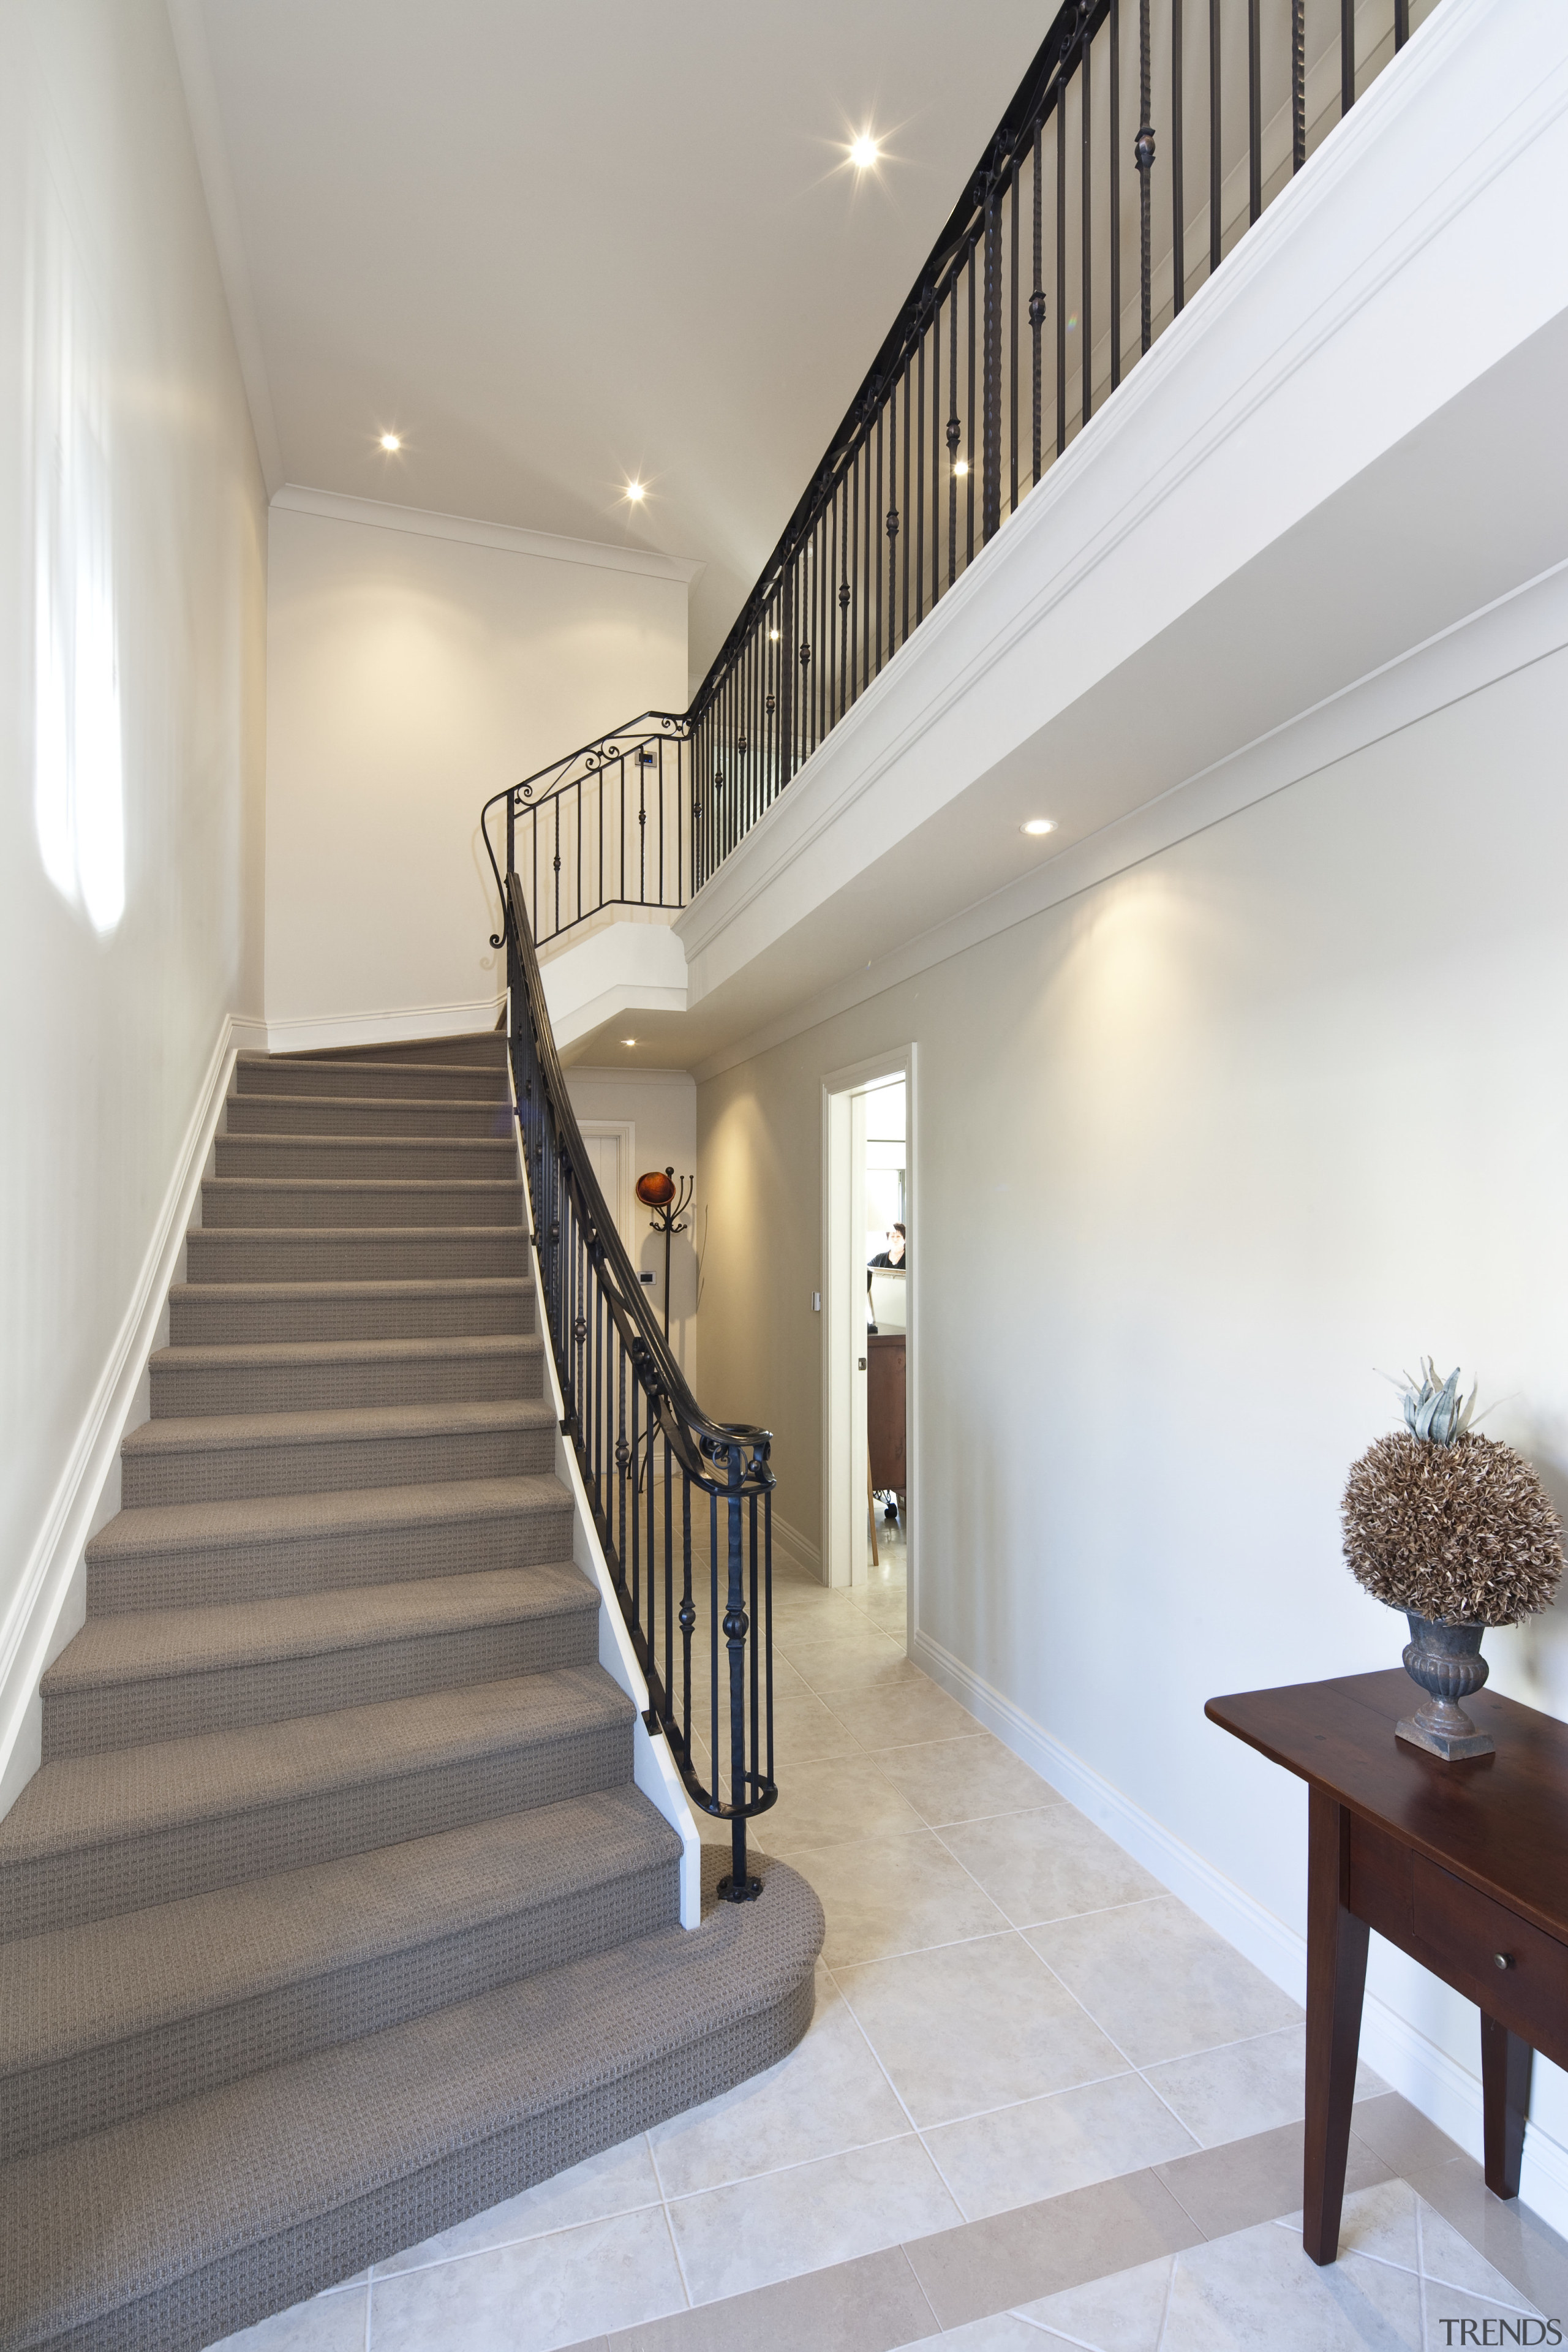 View of stairway which features iron balustrade and architecture, baluster, ceiling, daylighting, estate, floor, flooring, handrail, home, house, interior design, real estate, stairs, gray, white